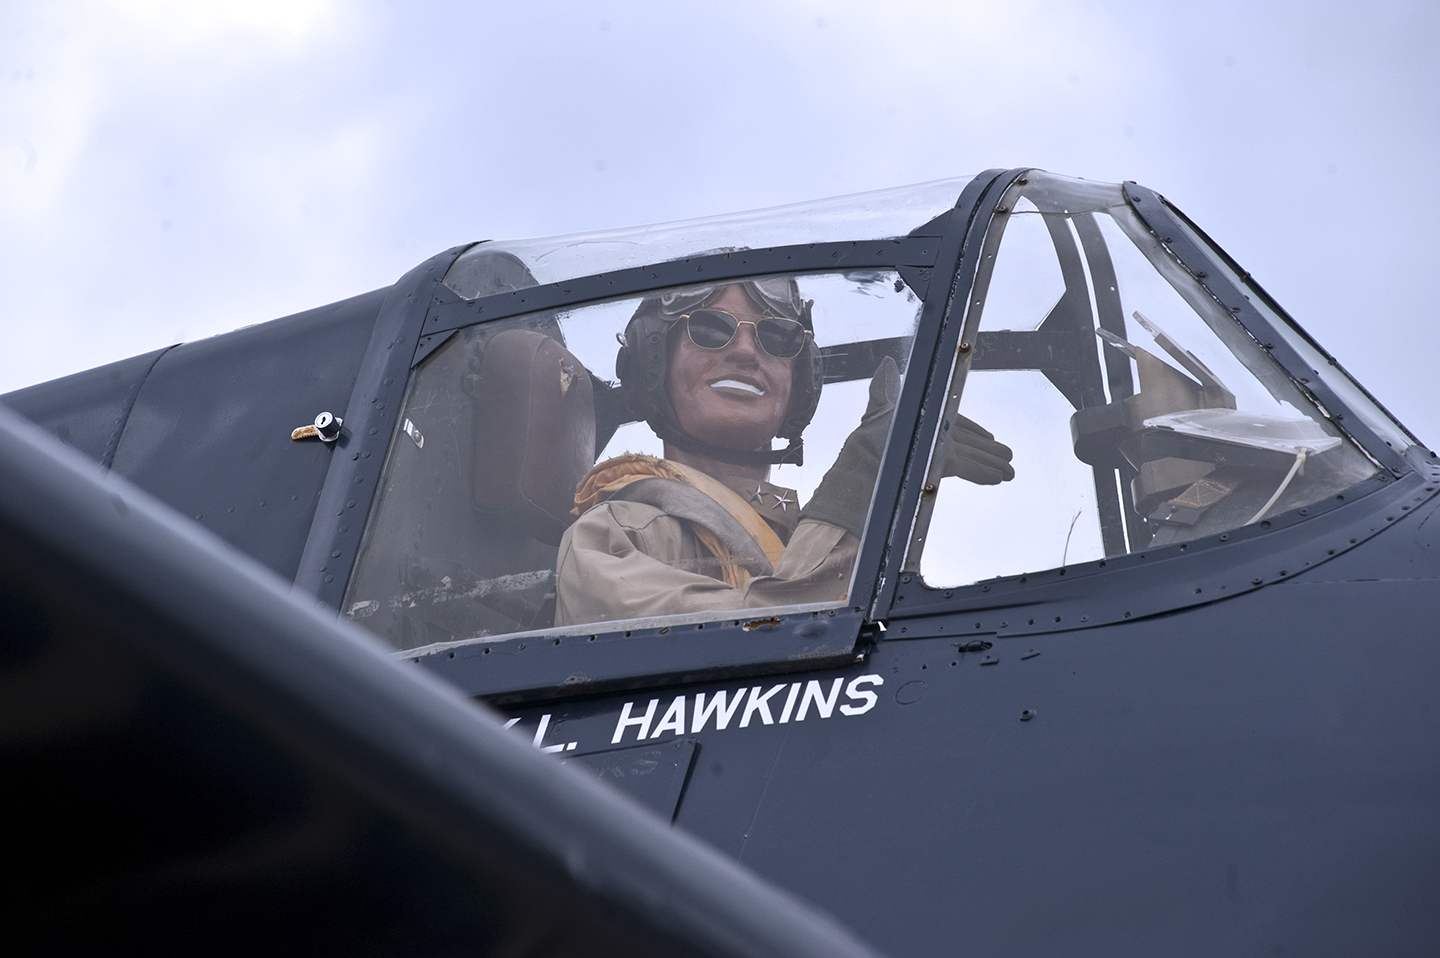 A close up of the Joint Base Andrews F6F-5K. The cockpit houses an animatronic manikin that salutes as cars drive by. It is wearing authentic navy dress donated by a veteran flyer from the USS Arizona. (photo via US Navy)